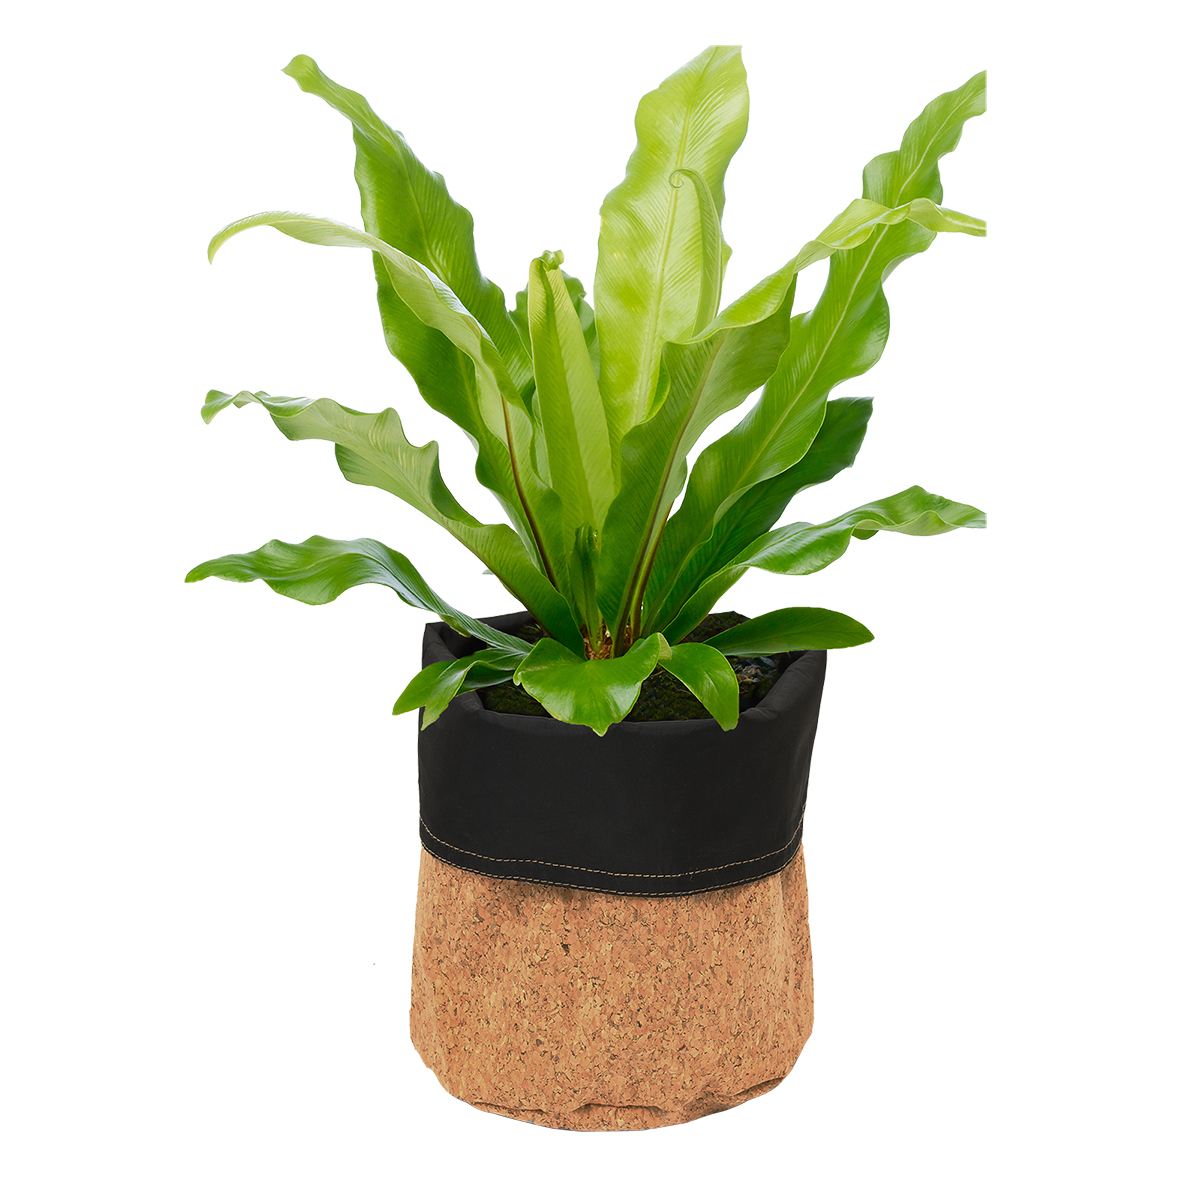 18827 Cork Planter Natural with plant